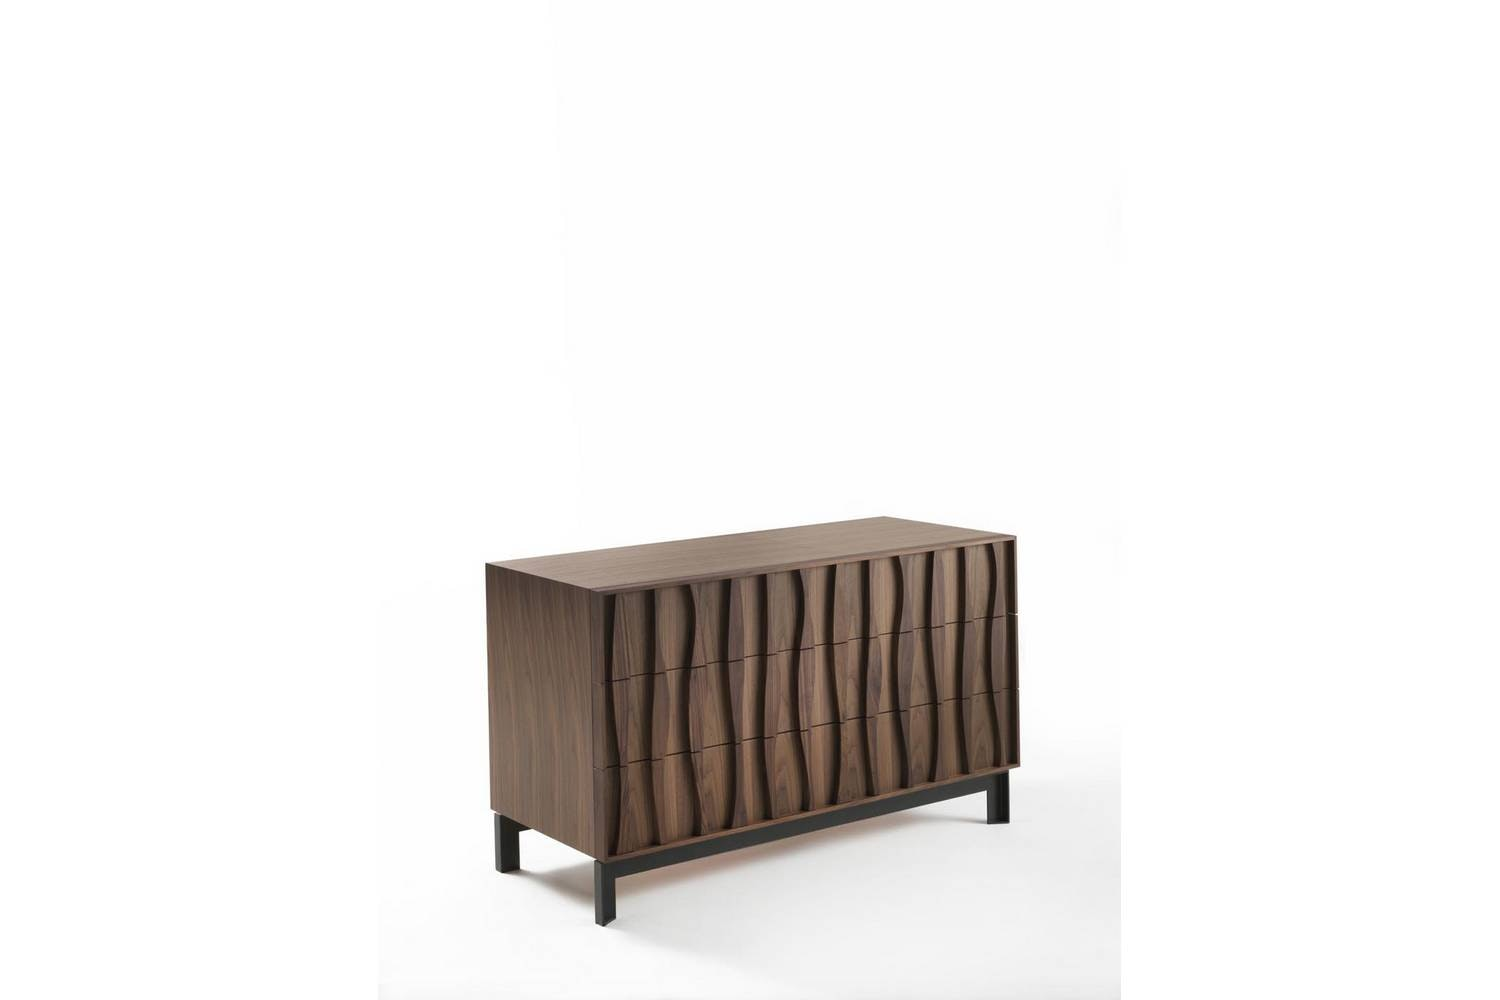 Masai Chest of Drawers by M. Marconato - T. Zappa for Porada